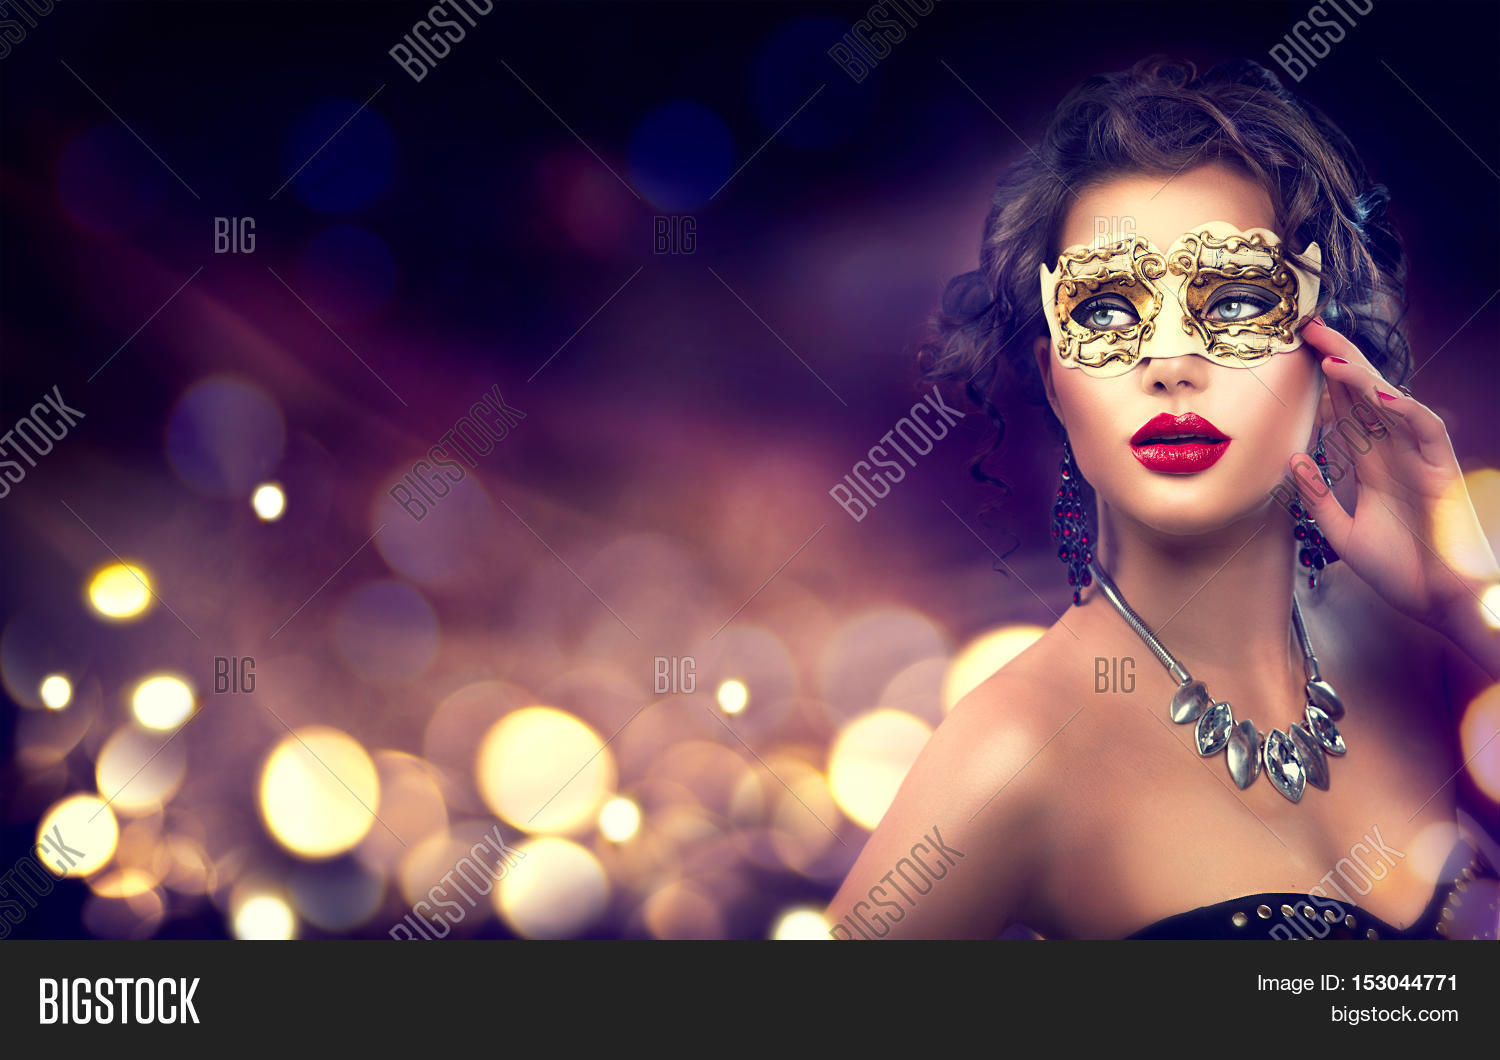 16f1f2d3c611 Beauty model woman wearing venetian masquerade carnival mask at party over  holiday dark background with magic